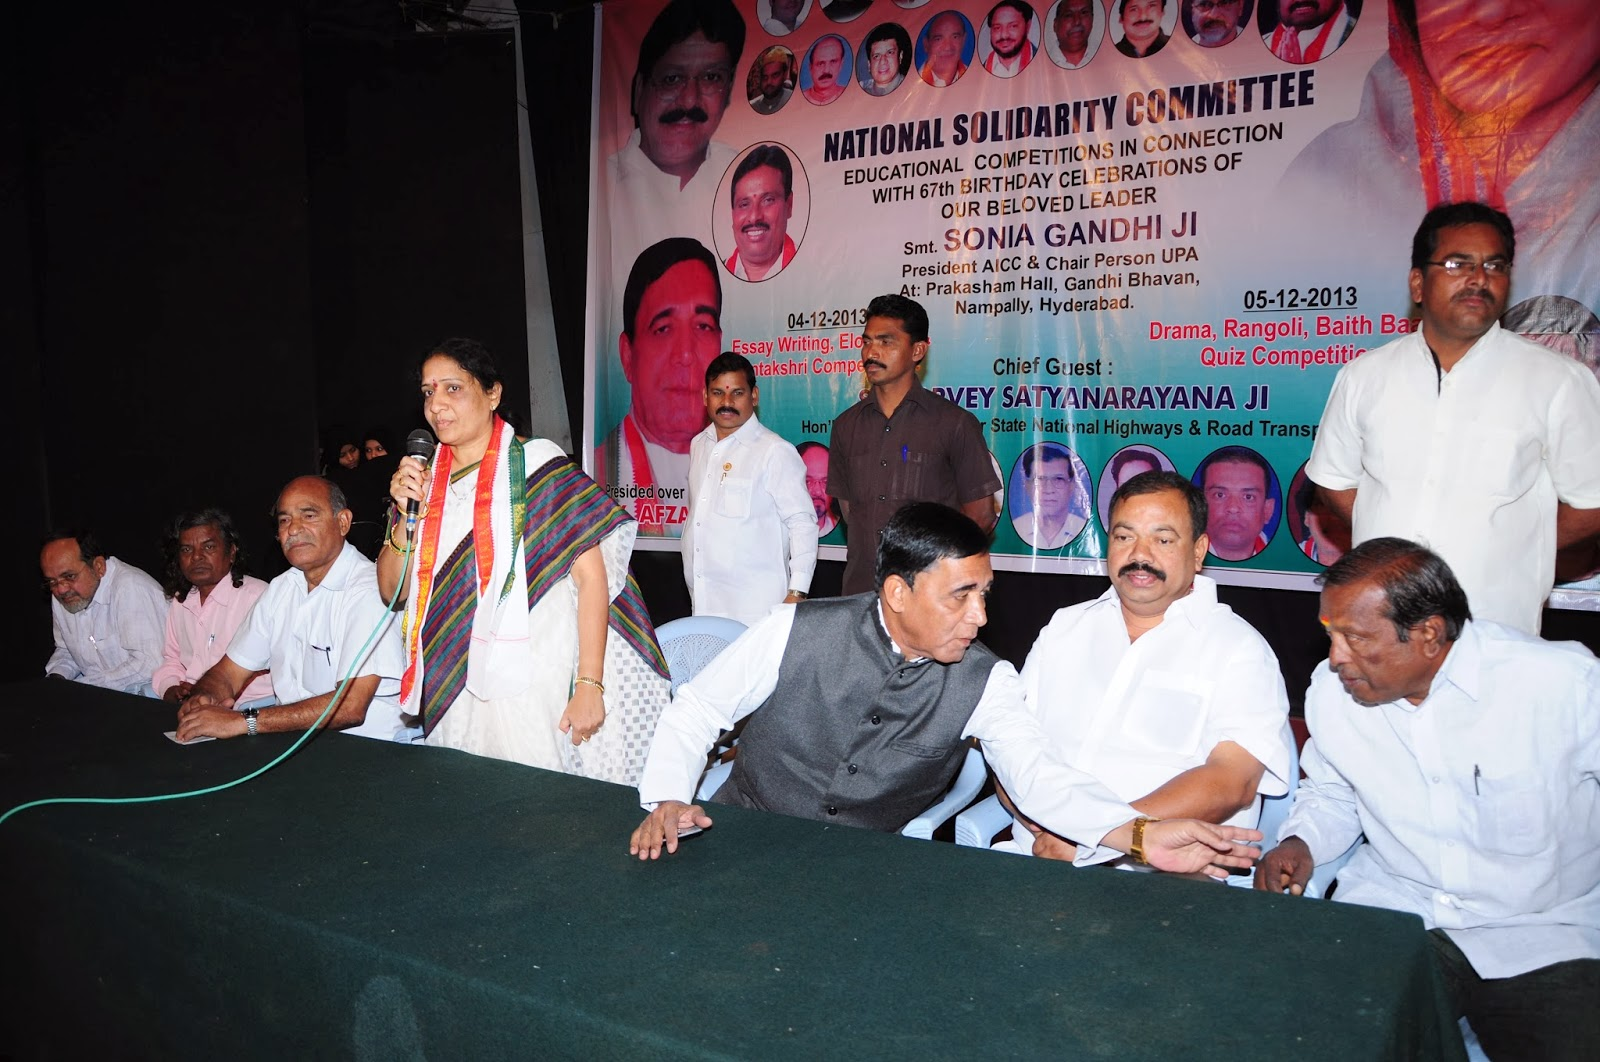 akula lalitha various activities on our beloved leader smt sonia  various activities on our beloved leader smt sonia gandhi s birth day at gandhi bhavan 9 12 2013